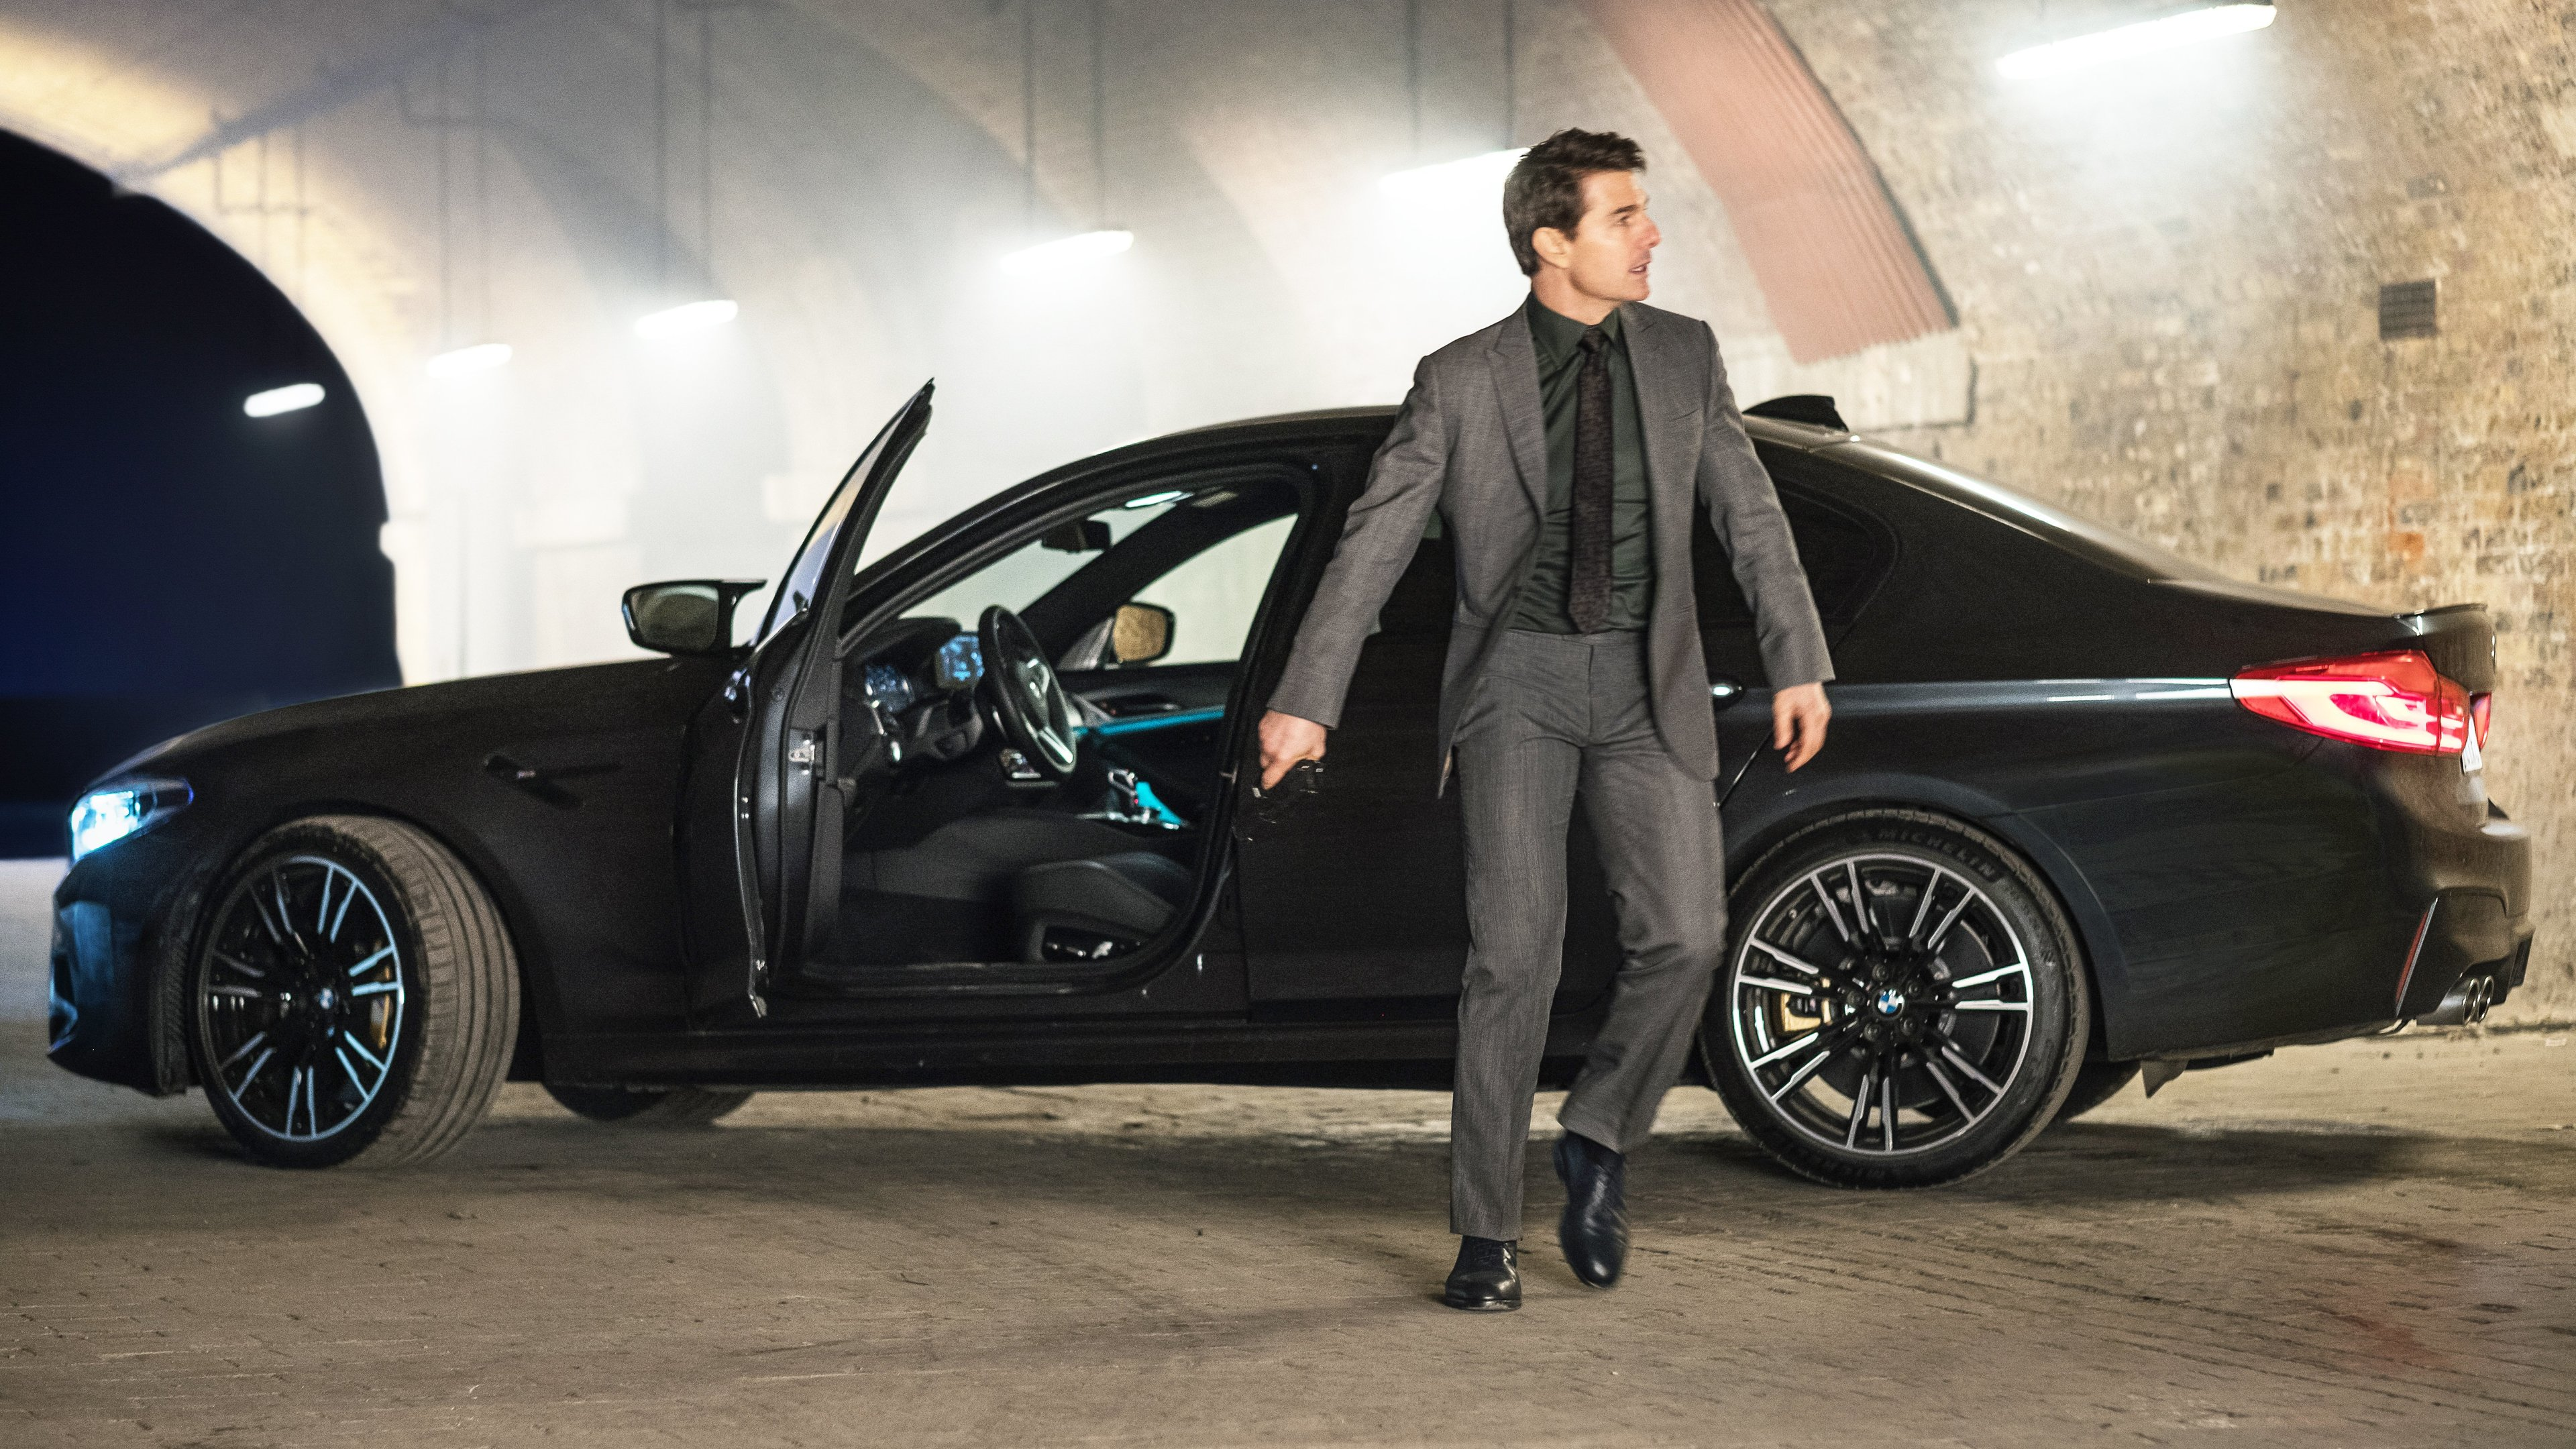 tom cruise mission impossible fallout bmw m5 1537645242 - Tom Cruise Mission Impossible Fallout Bmw M5 - tom cruise wallpapers, movies wallpapers, mission impossible fallout wallpapers, mission impossible 6 wallpapers, hd-wallpapers, bmw m5 wallpapers, 5k wallpapers, 4k-wallpapers, 2018-movies-wallpapers